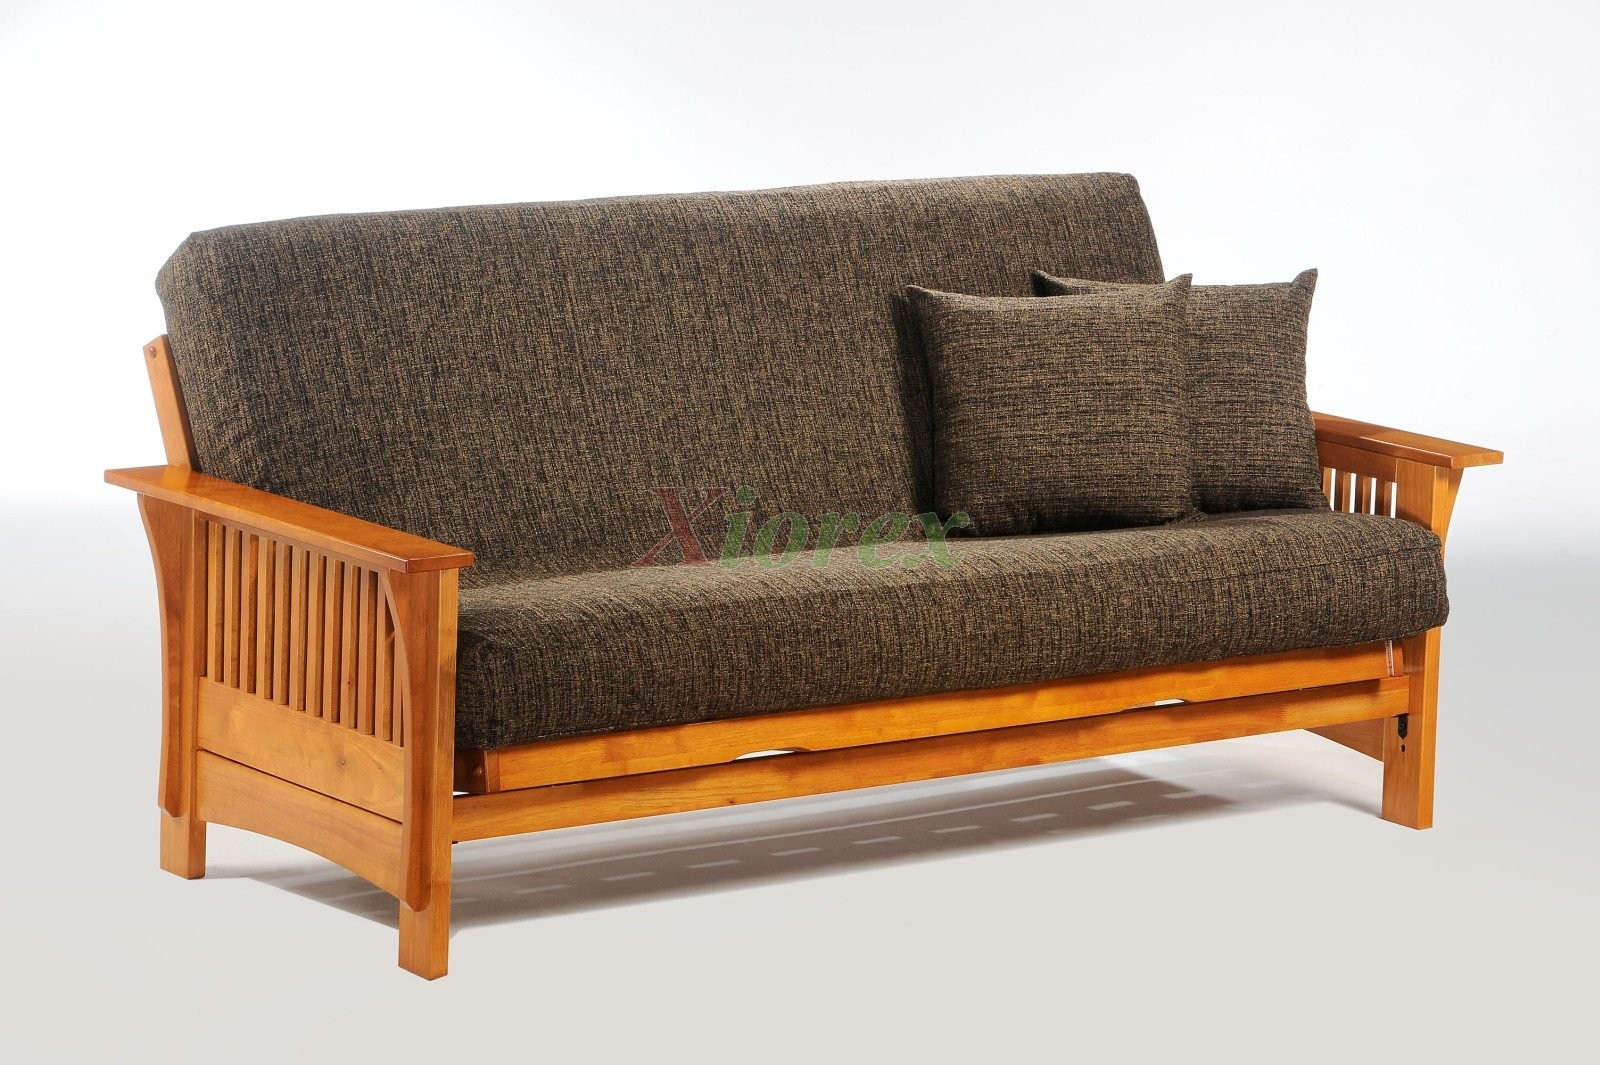 Autumn Futon By Night And Day In Hony Oak Finish | Xiorex Futons Online